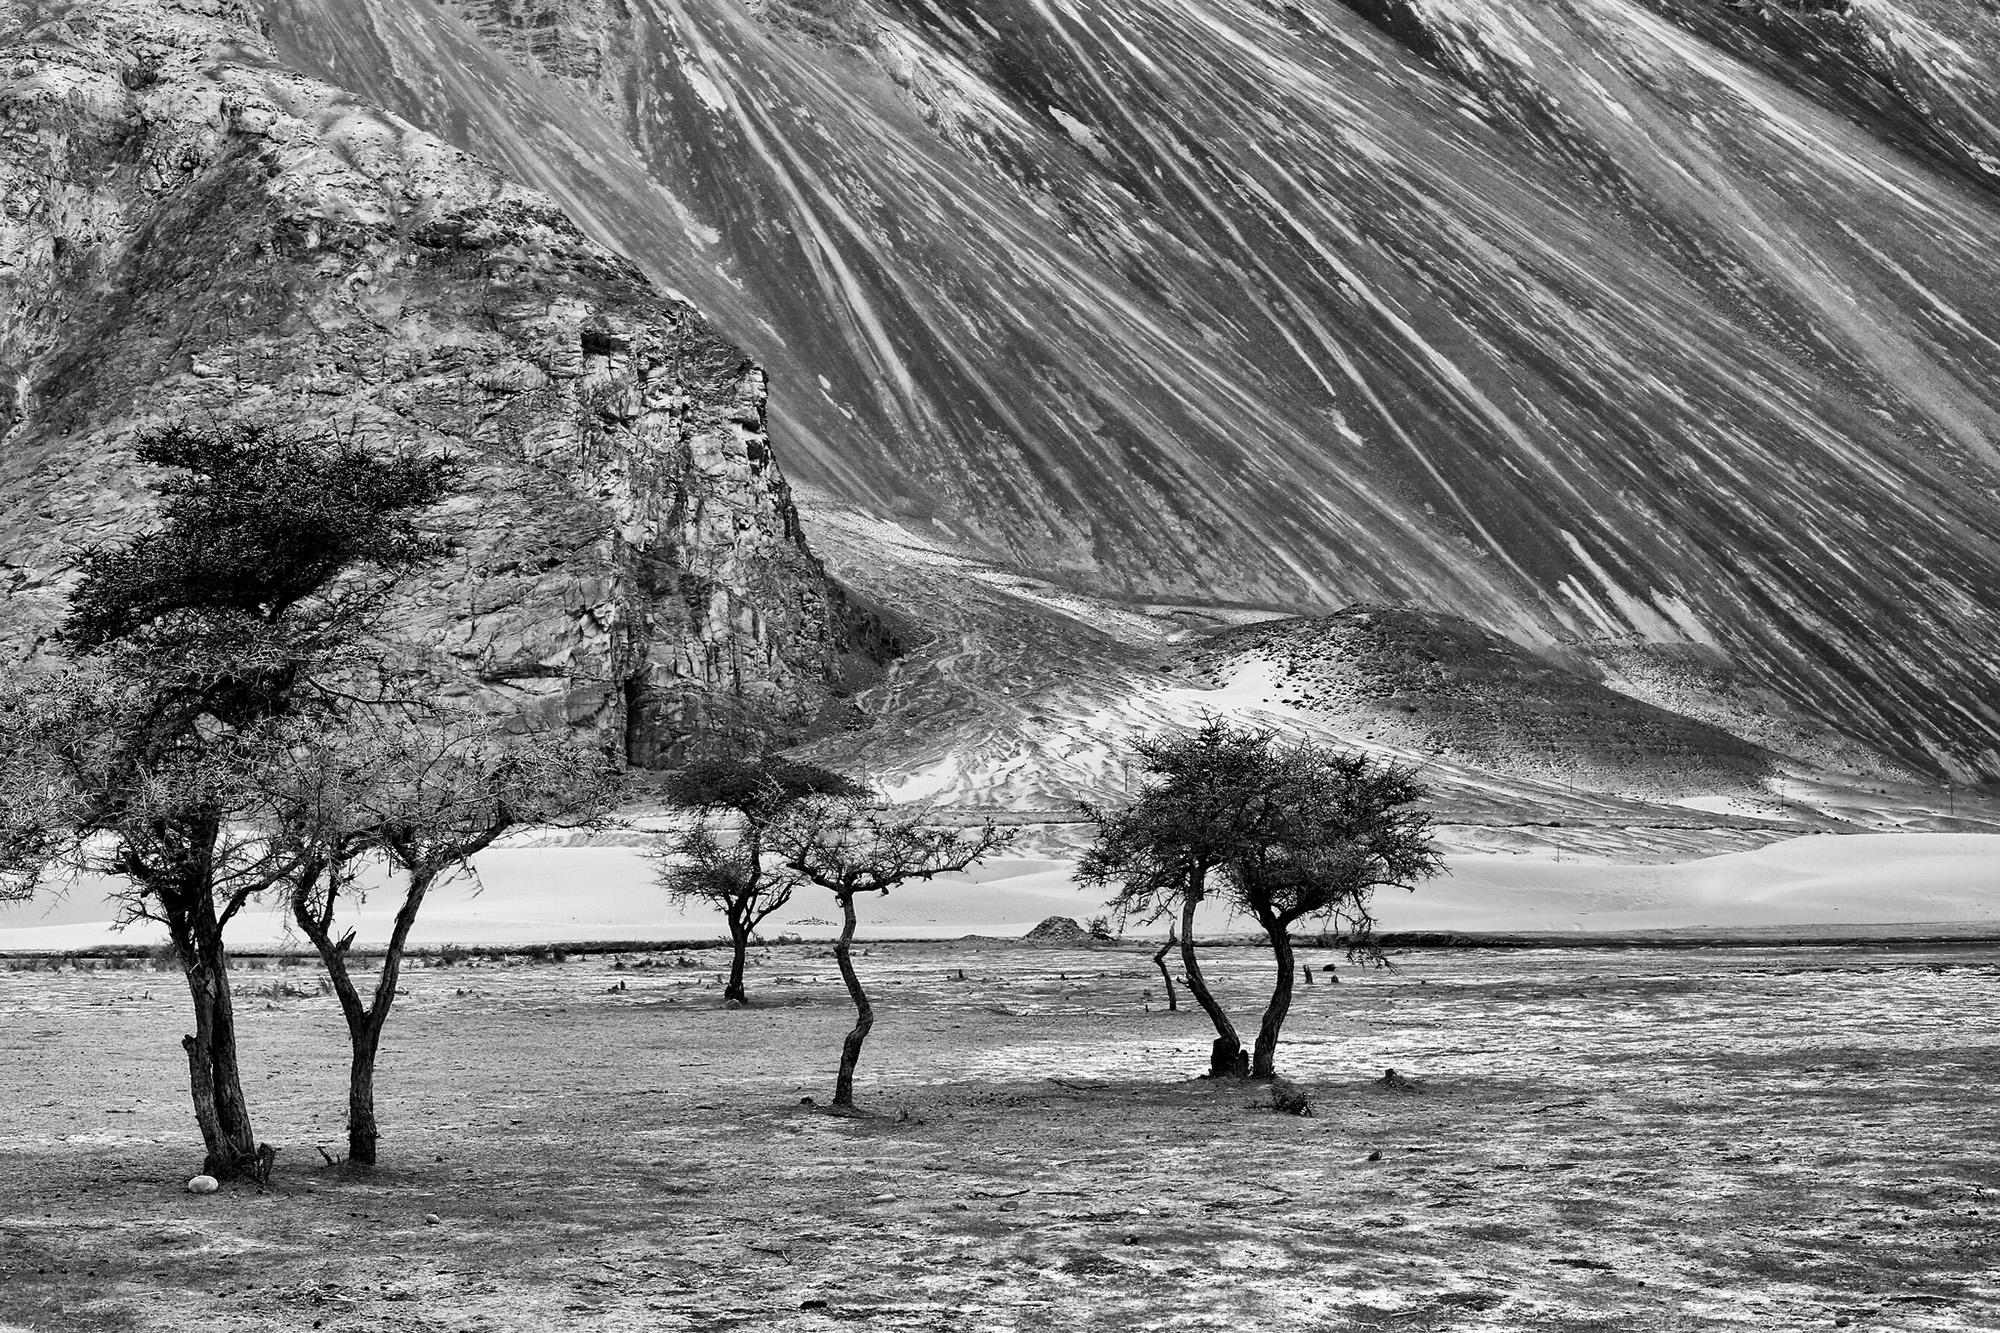 The face of the mountain had two different textures that caught my eye. A crushed paper look and the other one like star trails on earth. These knotty trees bring you back to reality. This is the magical landscape of Nubra Valley.